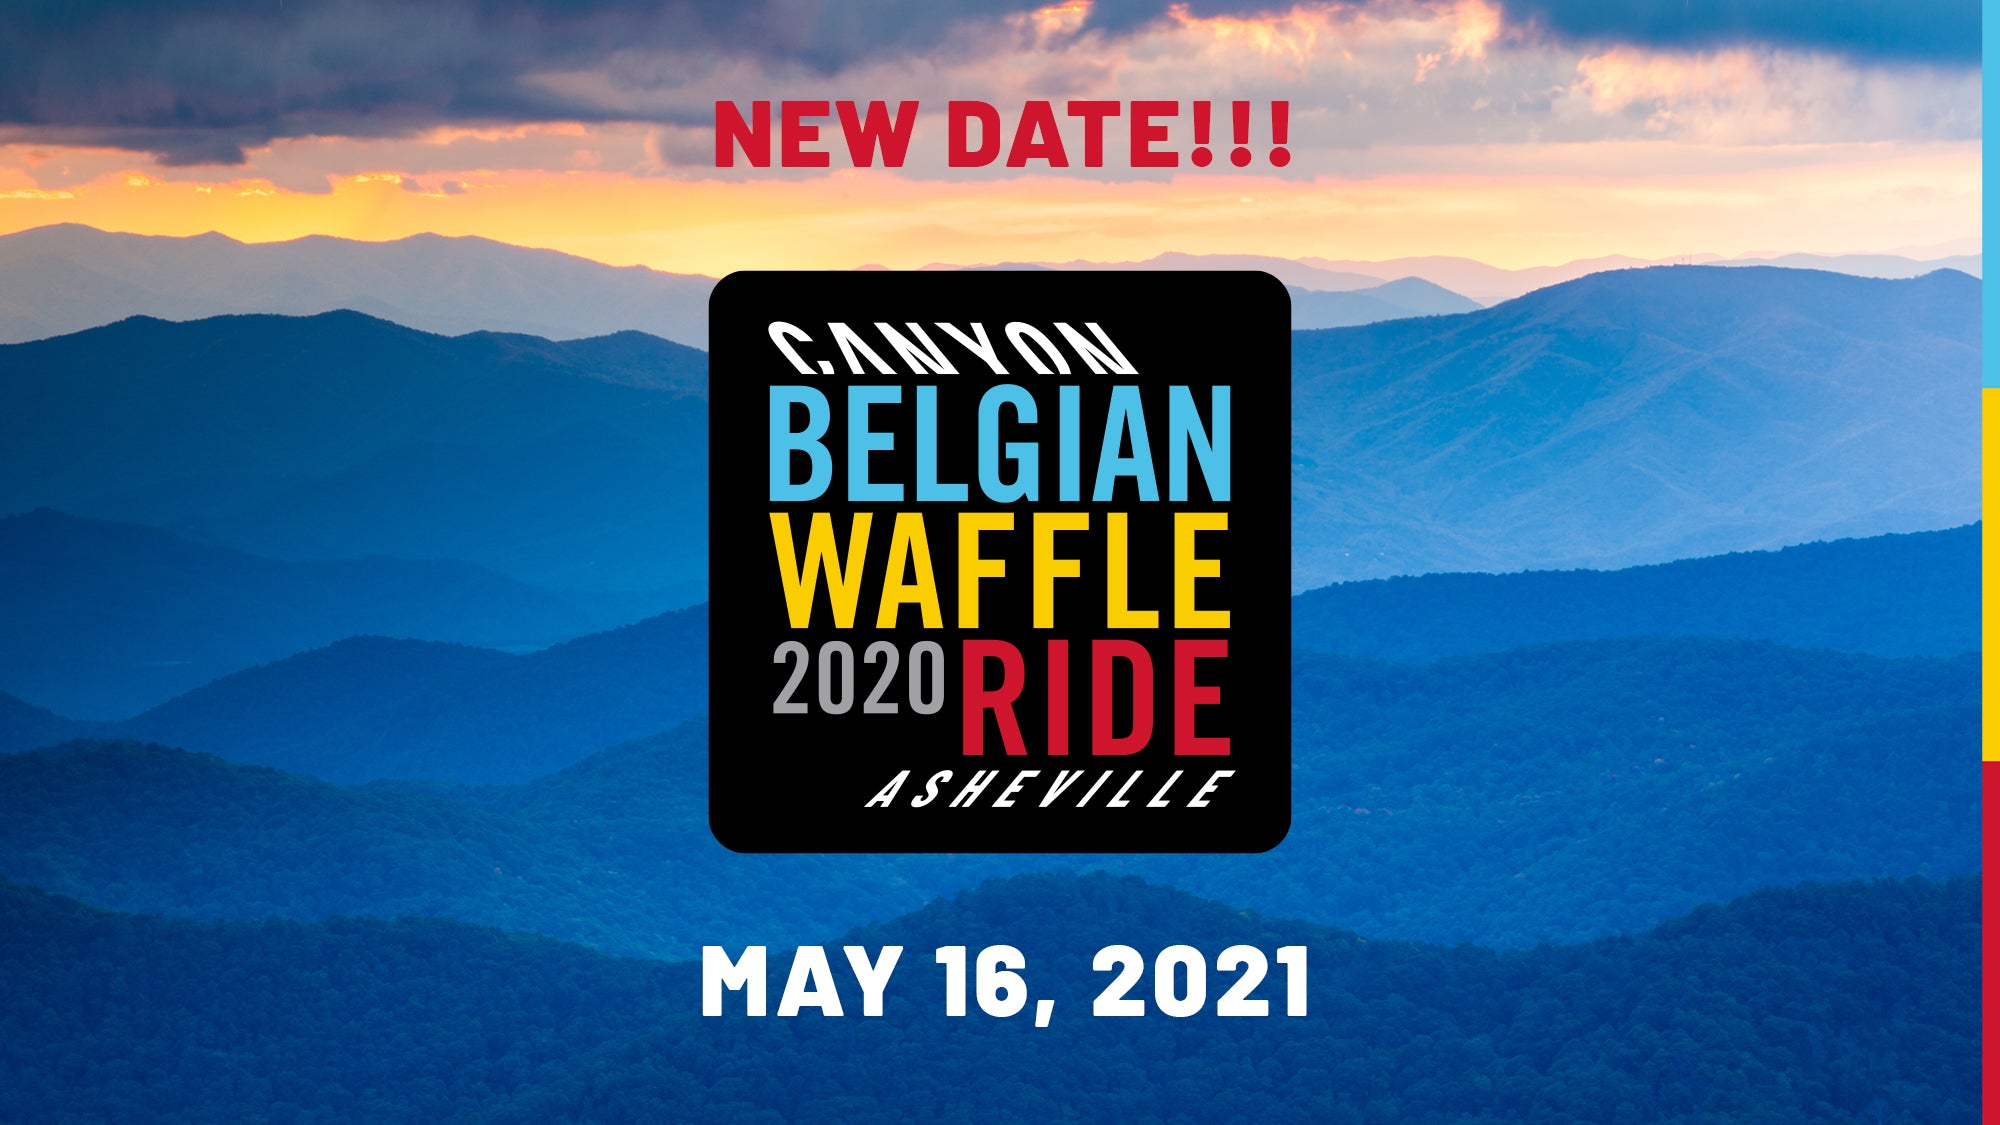 The Canyon BWR Asheville is postponed to 5/16/2021